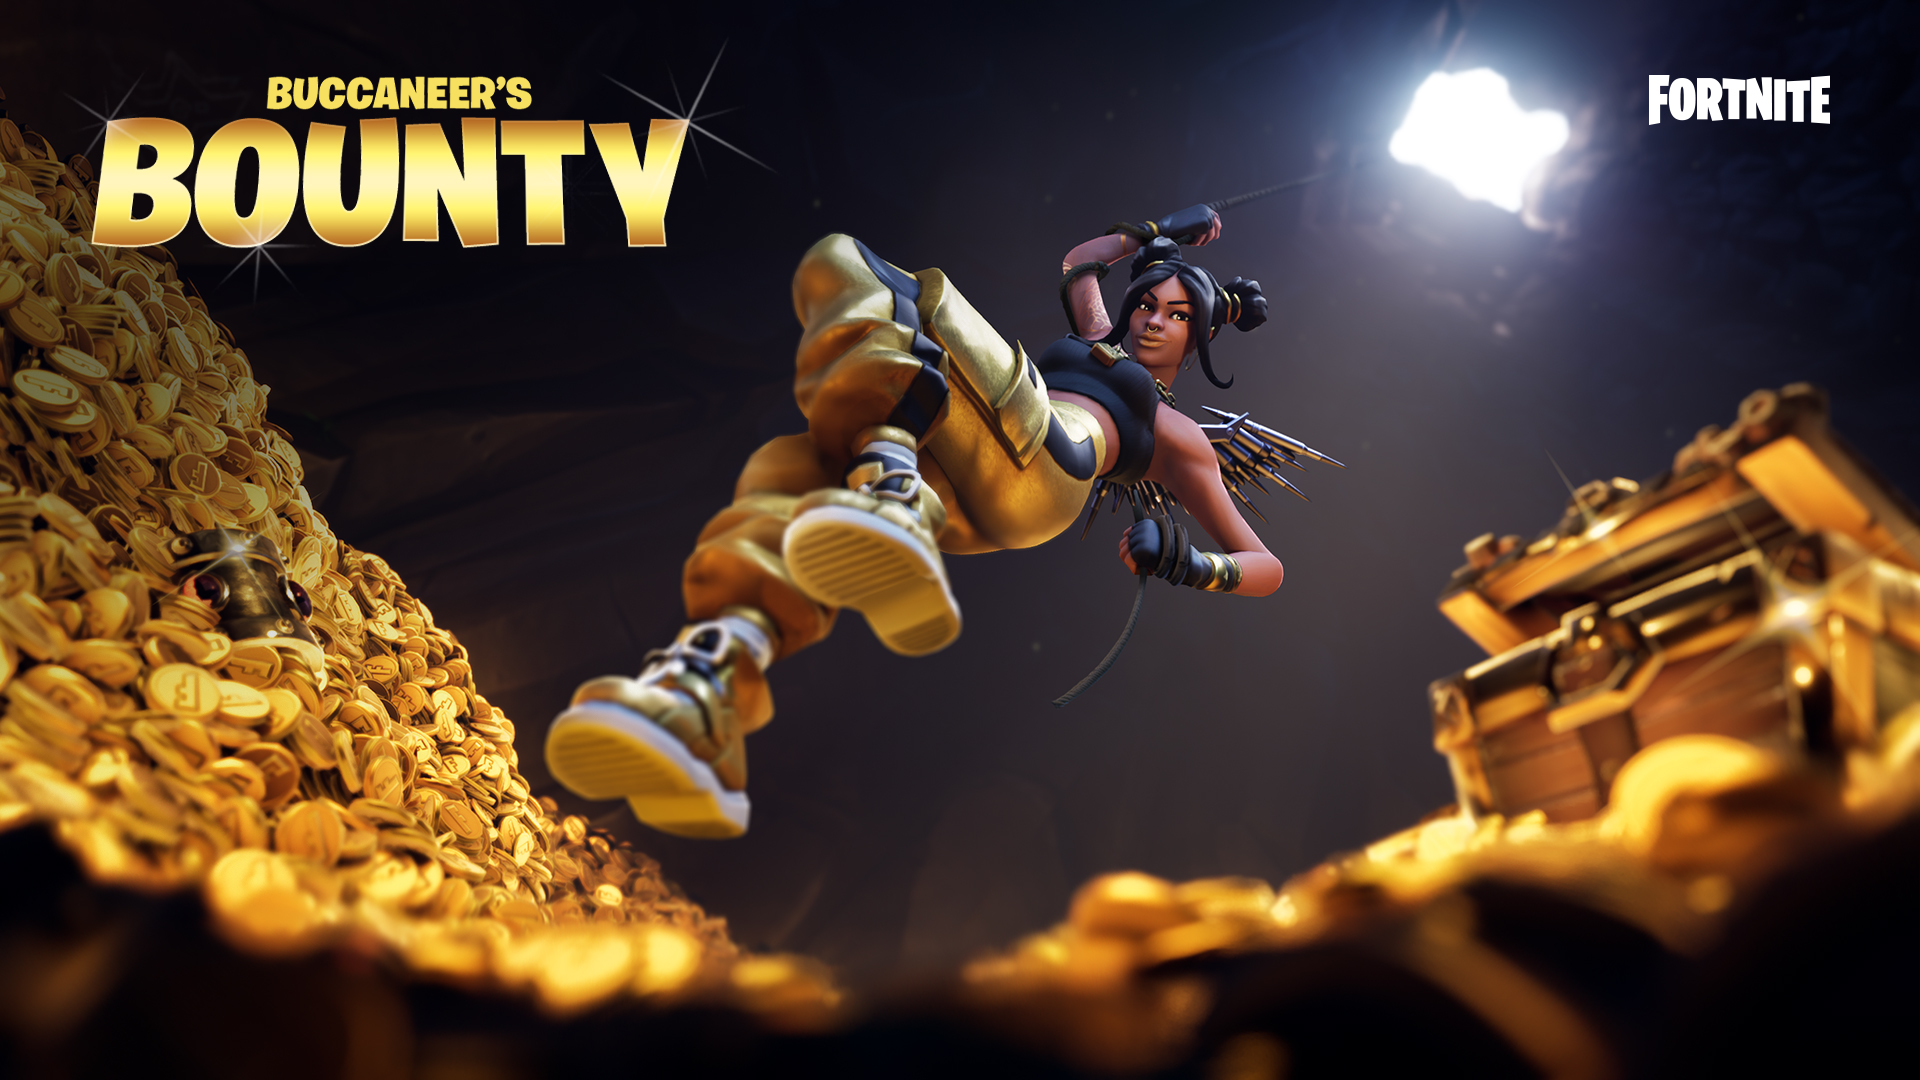 Photo of Fortnite 8.30 adds Buccaneer's Bounty, a Limited Time Event that Rotates in Every Day from April 10 to April 15